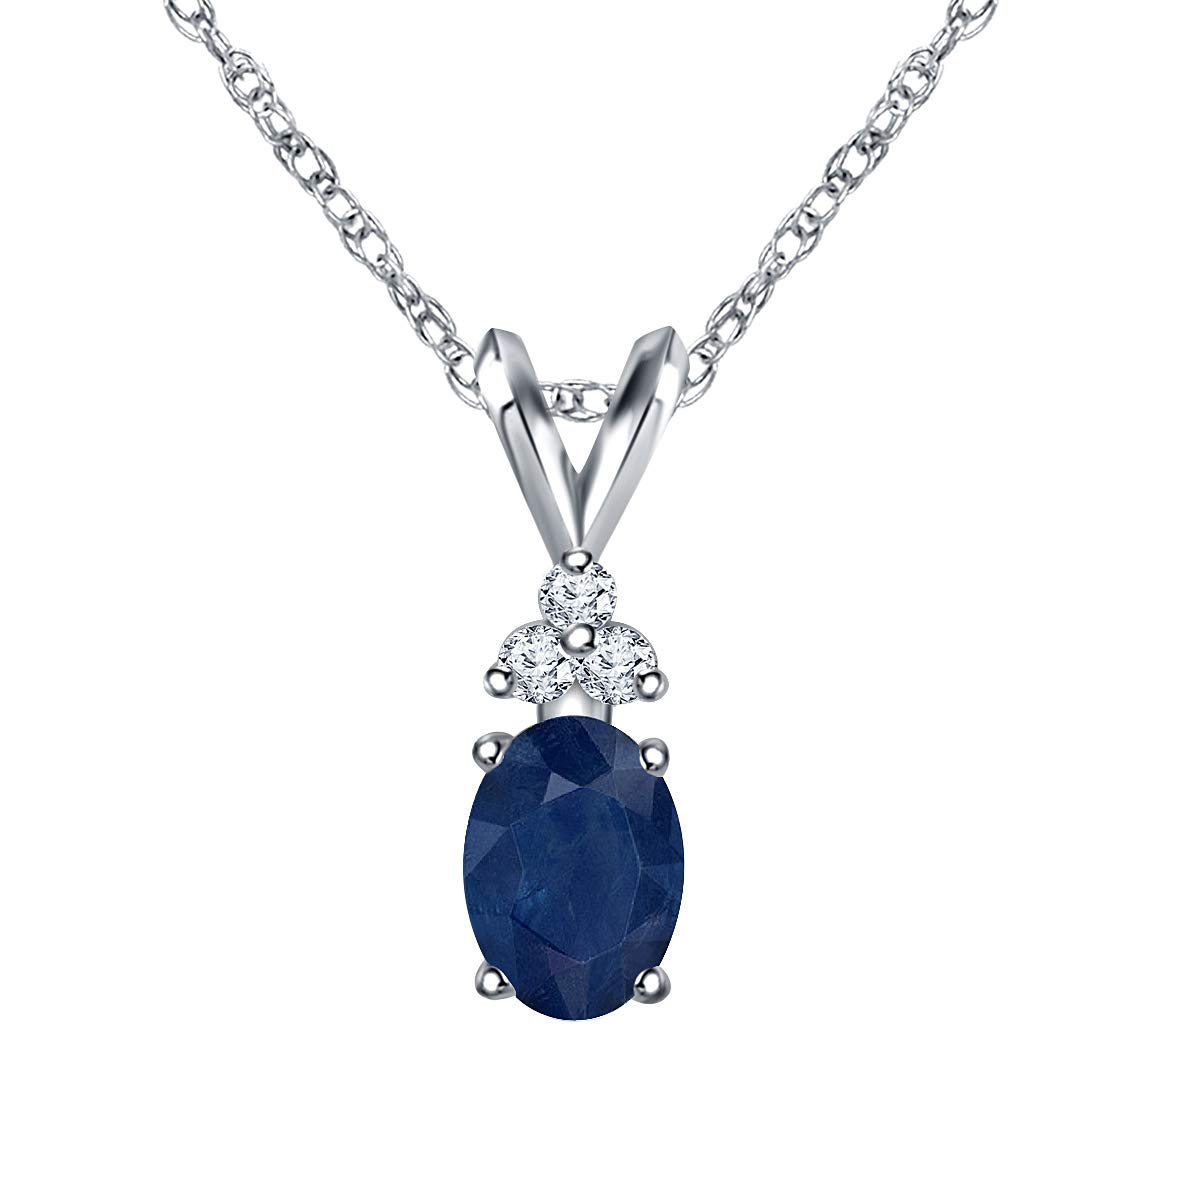 Ringjewels Oval /& Round 0.06 Ct Sapphire /& Sim Diamond Pendant Necklace W//18 in 14K White Gold Plated